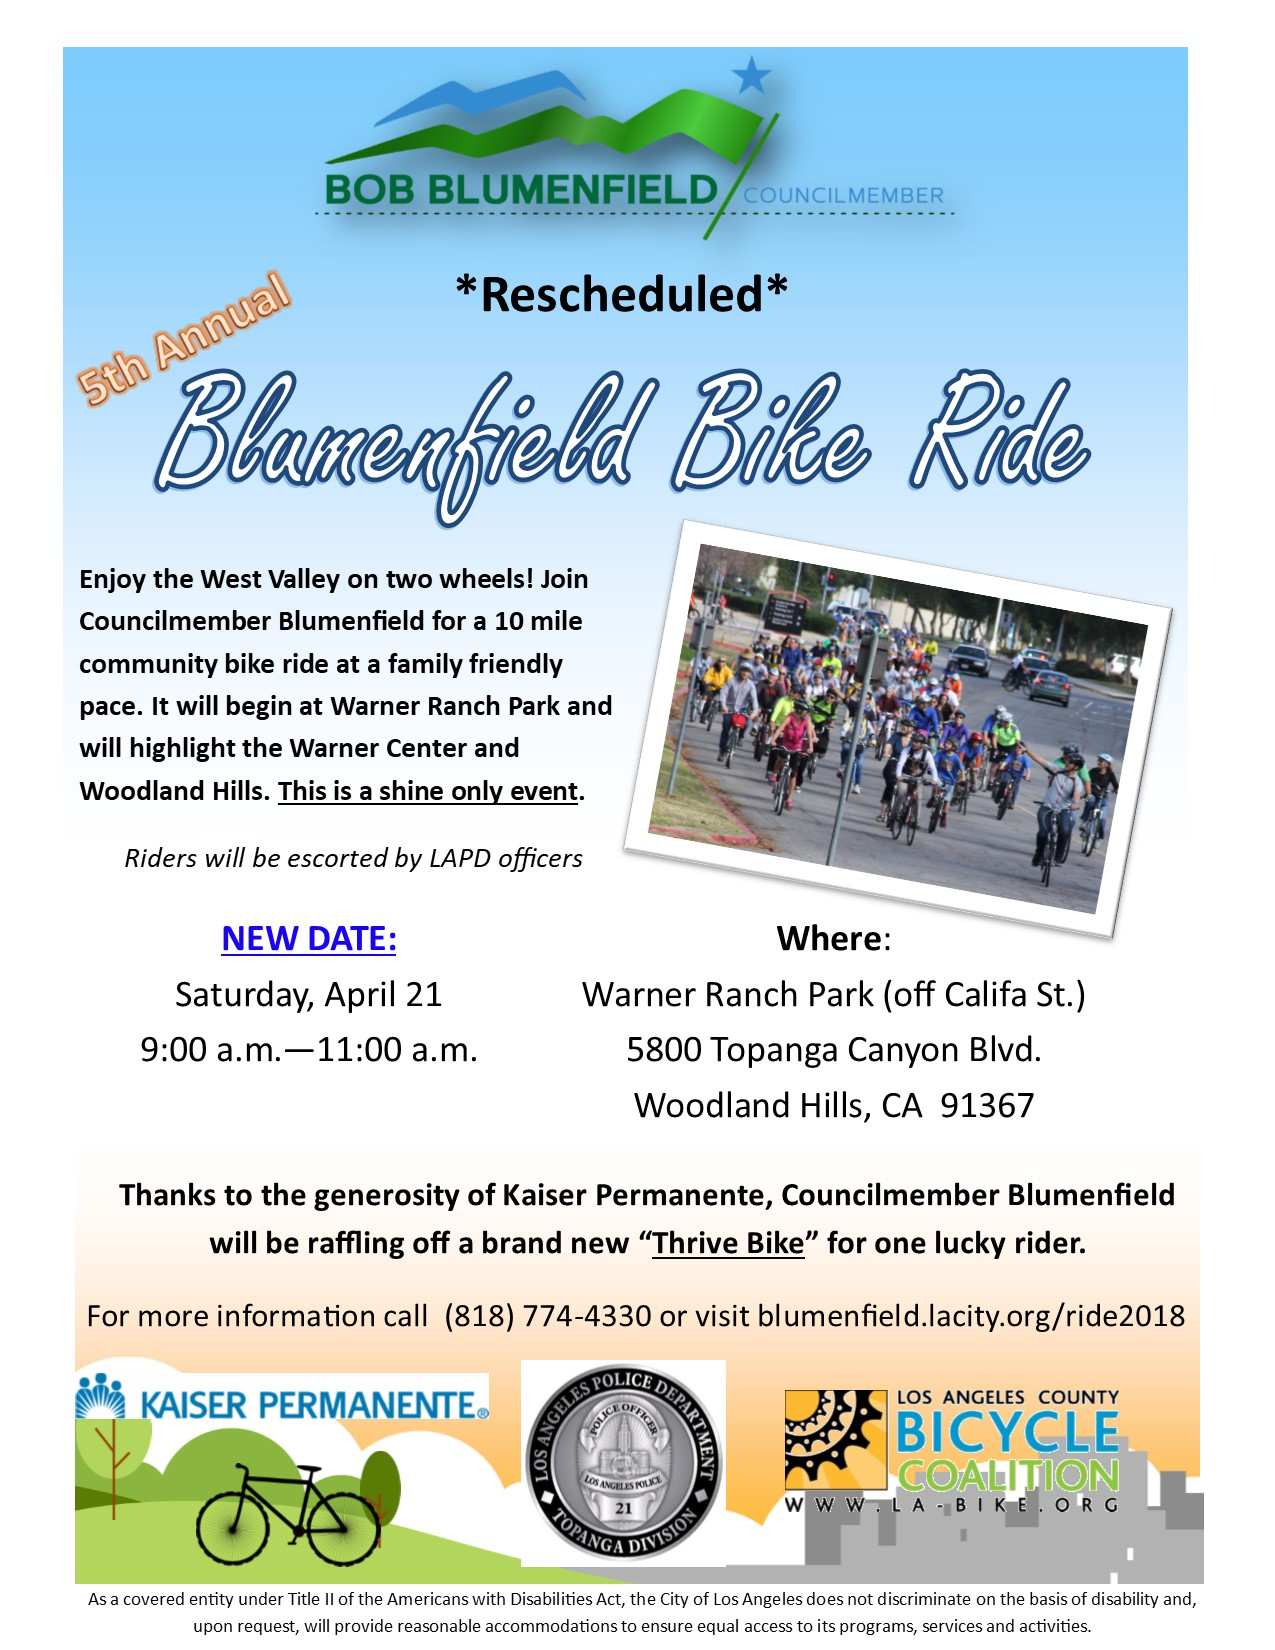 Blumenfield_Bike_Ride_Flyer_3.3.18_final.jpg